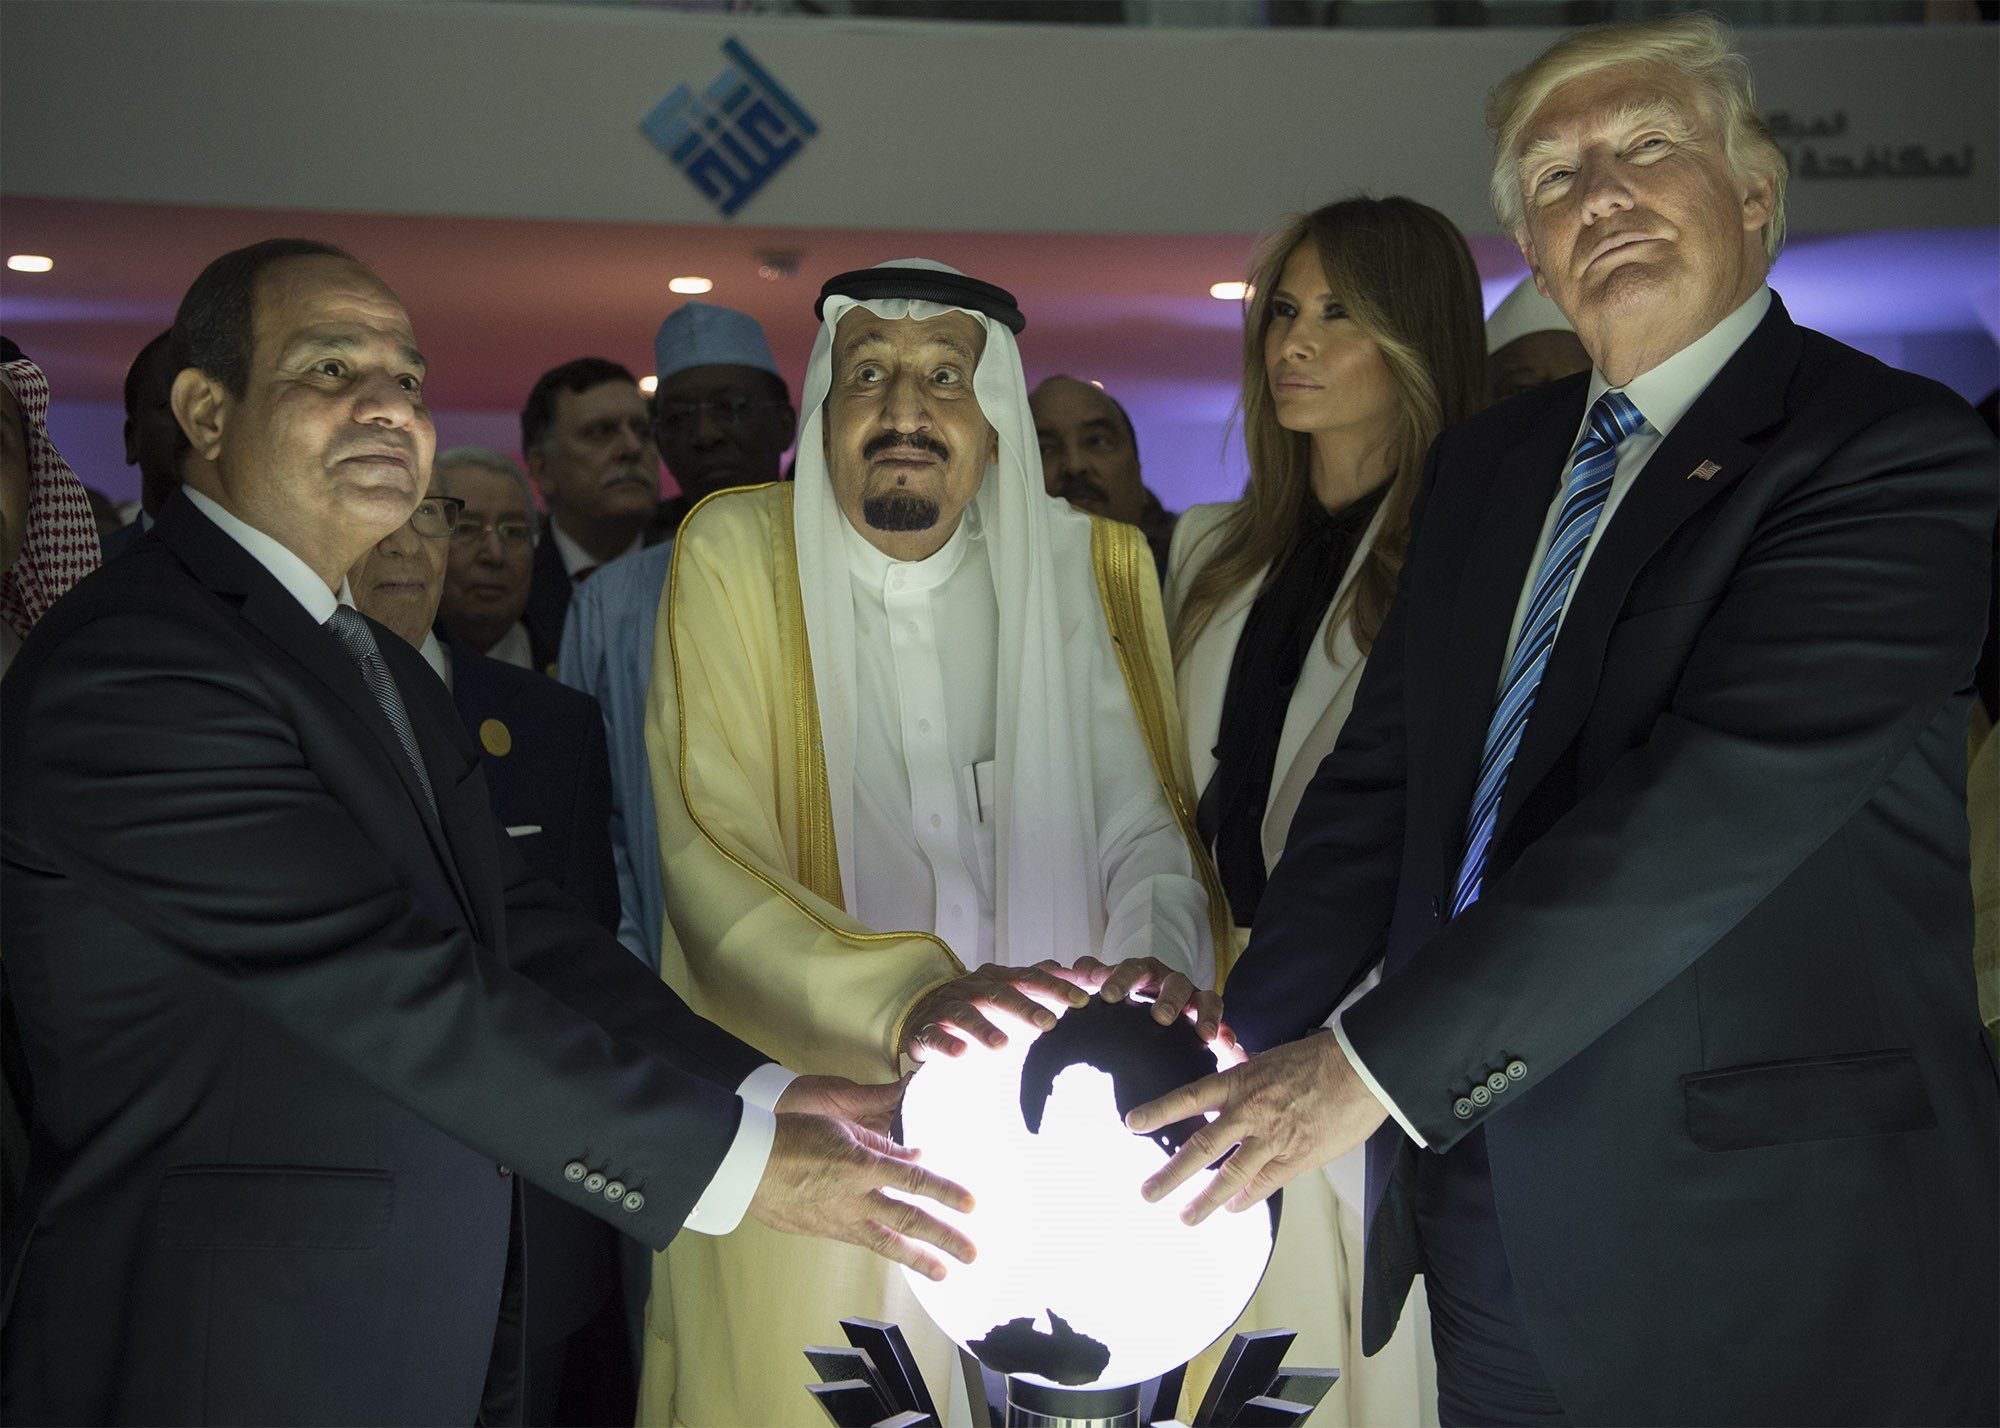 In May, President Trump touching a glowing volleyball glass orb at a summit in Saudi Arabia lit up the whole internet with its reflective glow. He was inaugurating  the new Global Center for Combating Extremist Ideology in Riyadh, Saudi Arabia with Egyptian President Abdel Fattah al-Sisi, King Salman bin Abdulaziz. Trump's critics – who saw a villainous pop culture vibe - took it from there, comparing it lots of other groups that encircled an object that glowed. On Google, searches for  Trump orb  spiked immediately, and it caught the whole word's attention. Case in point: Prime Minsters from Denmark, Norway, Finland, Sweden and Iceland recreated the ubiquitous image, tweeting  who orb'd it better?